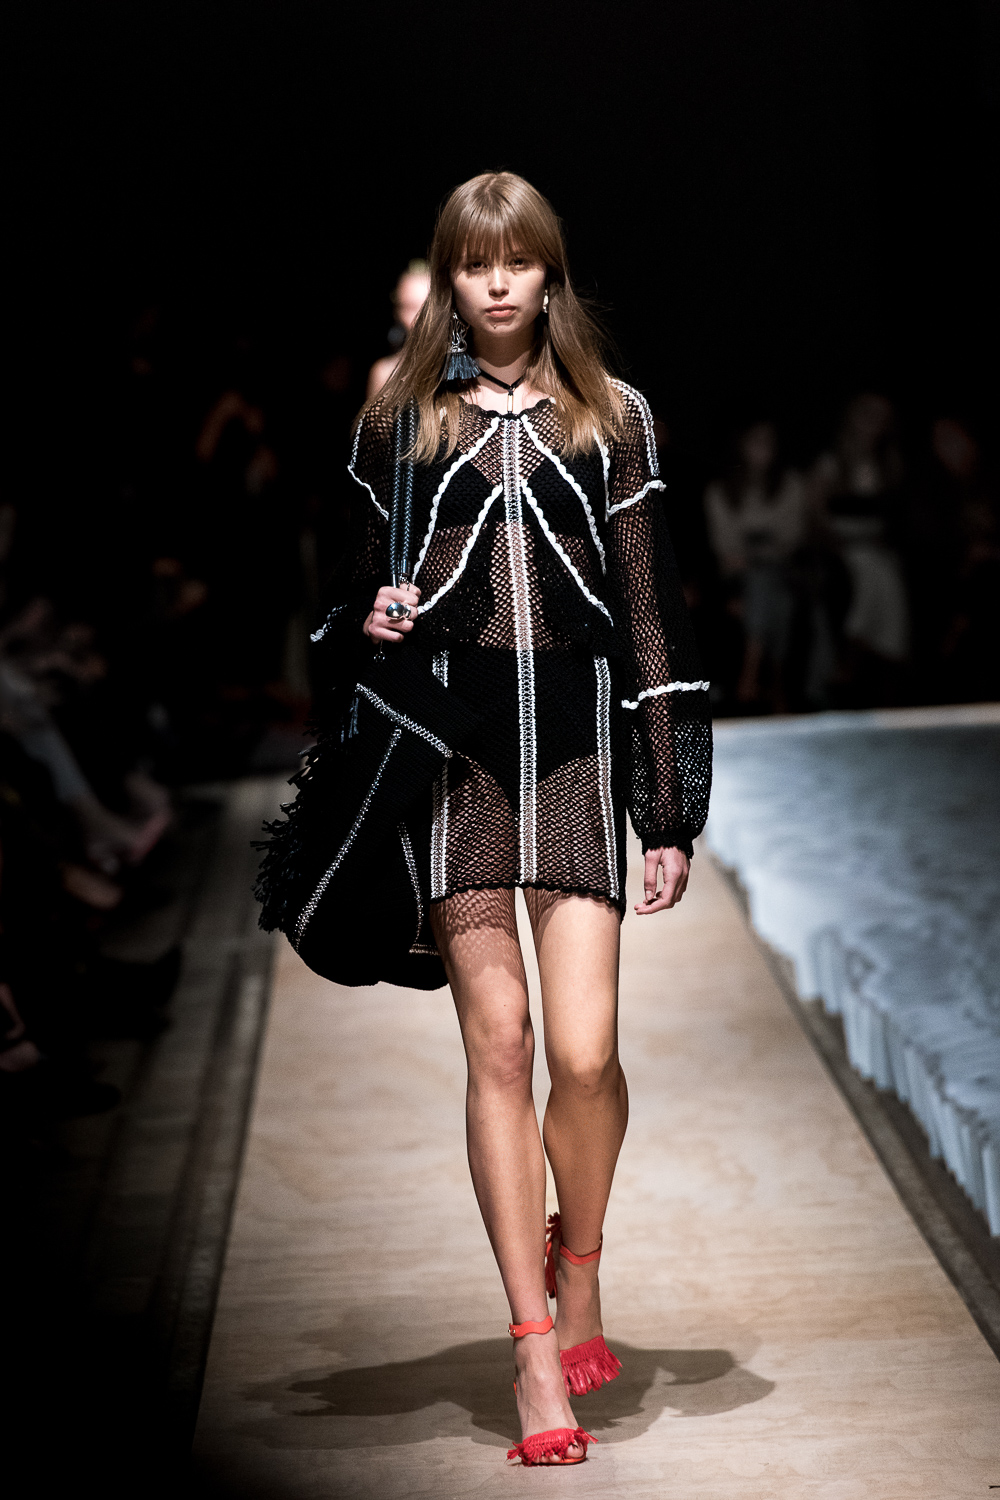 Chloe Worthington (Chadwick Models) walking for Sass & Bide in Bay 22-24 at Carriageworks.